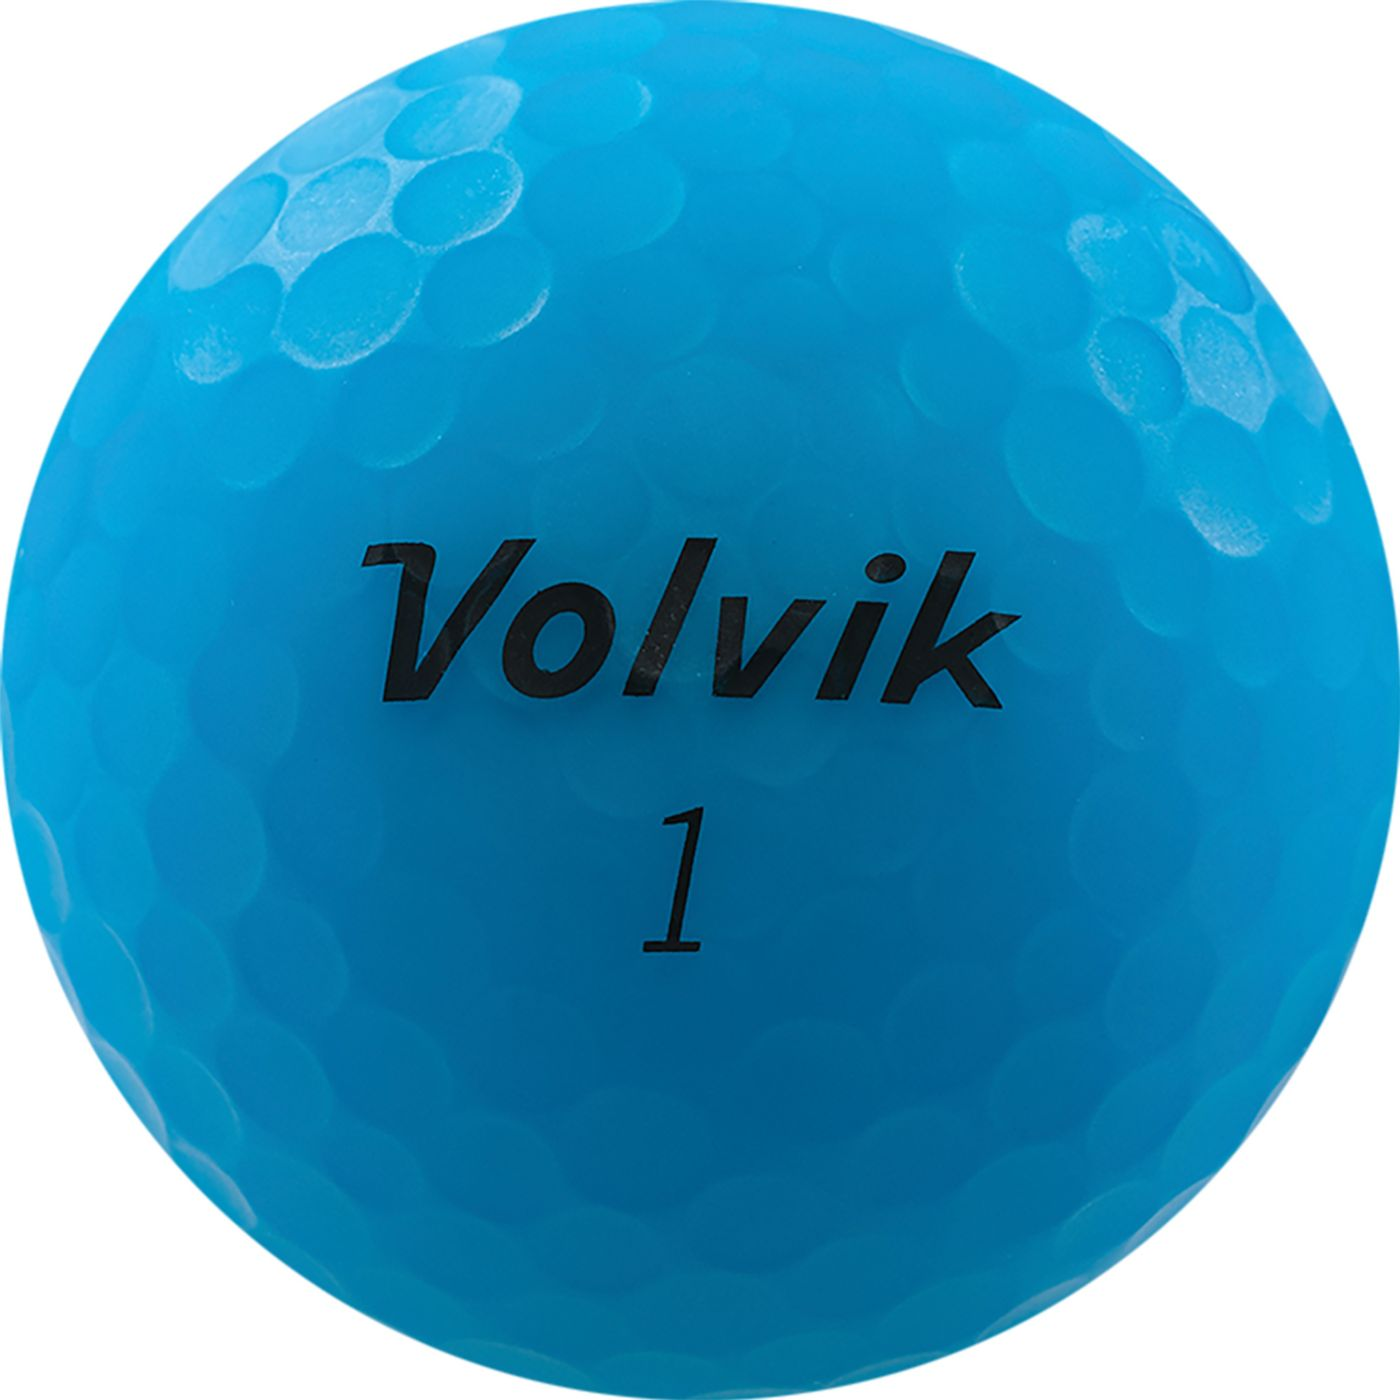 Volvik 2020 VIVID Matte Blue Personalized Golf Balls